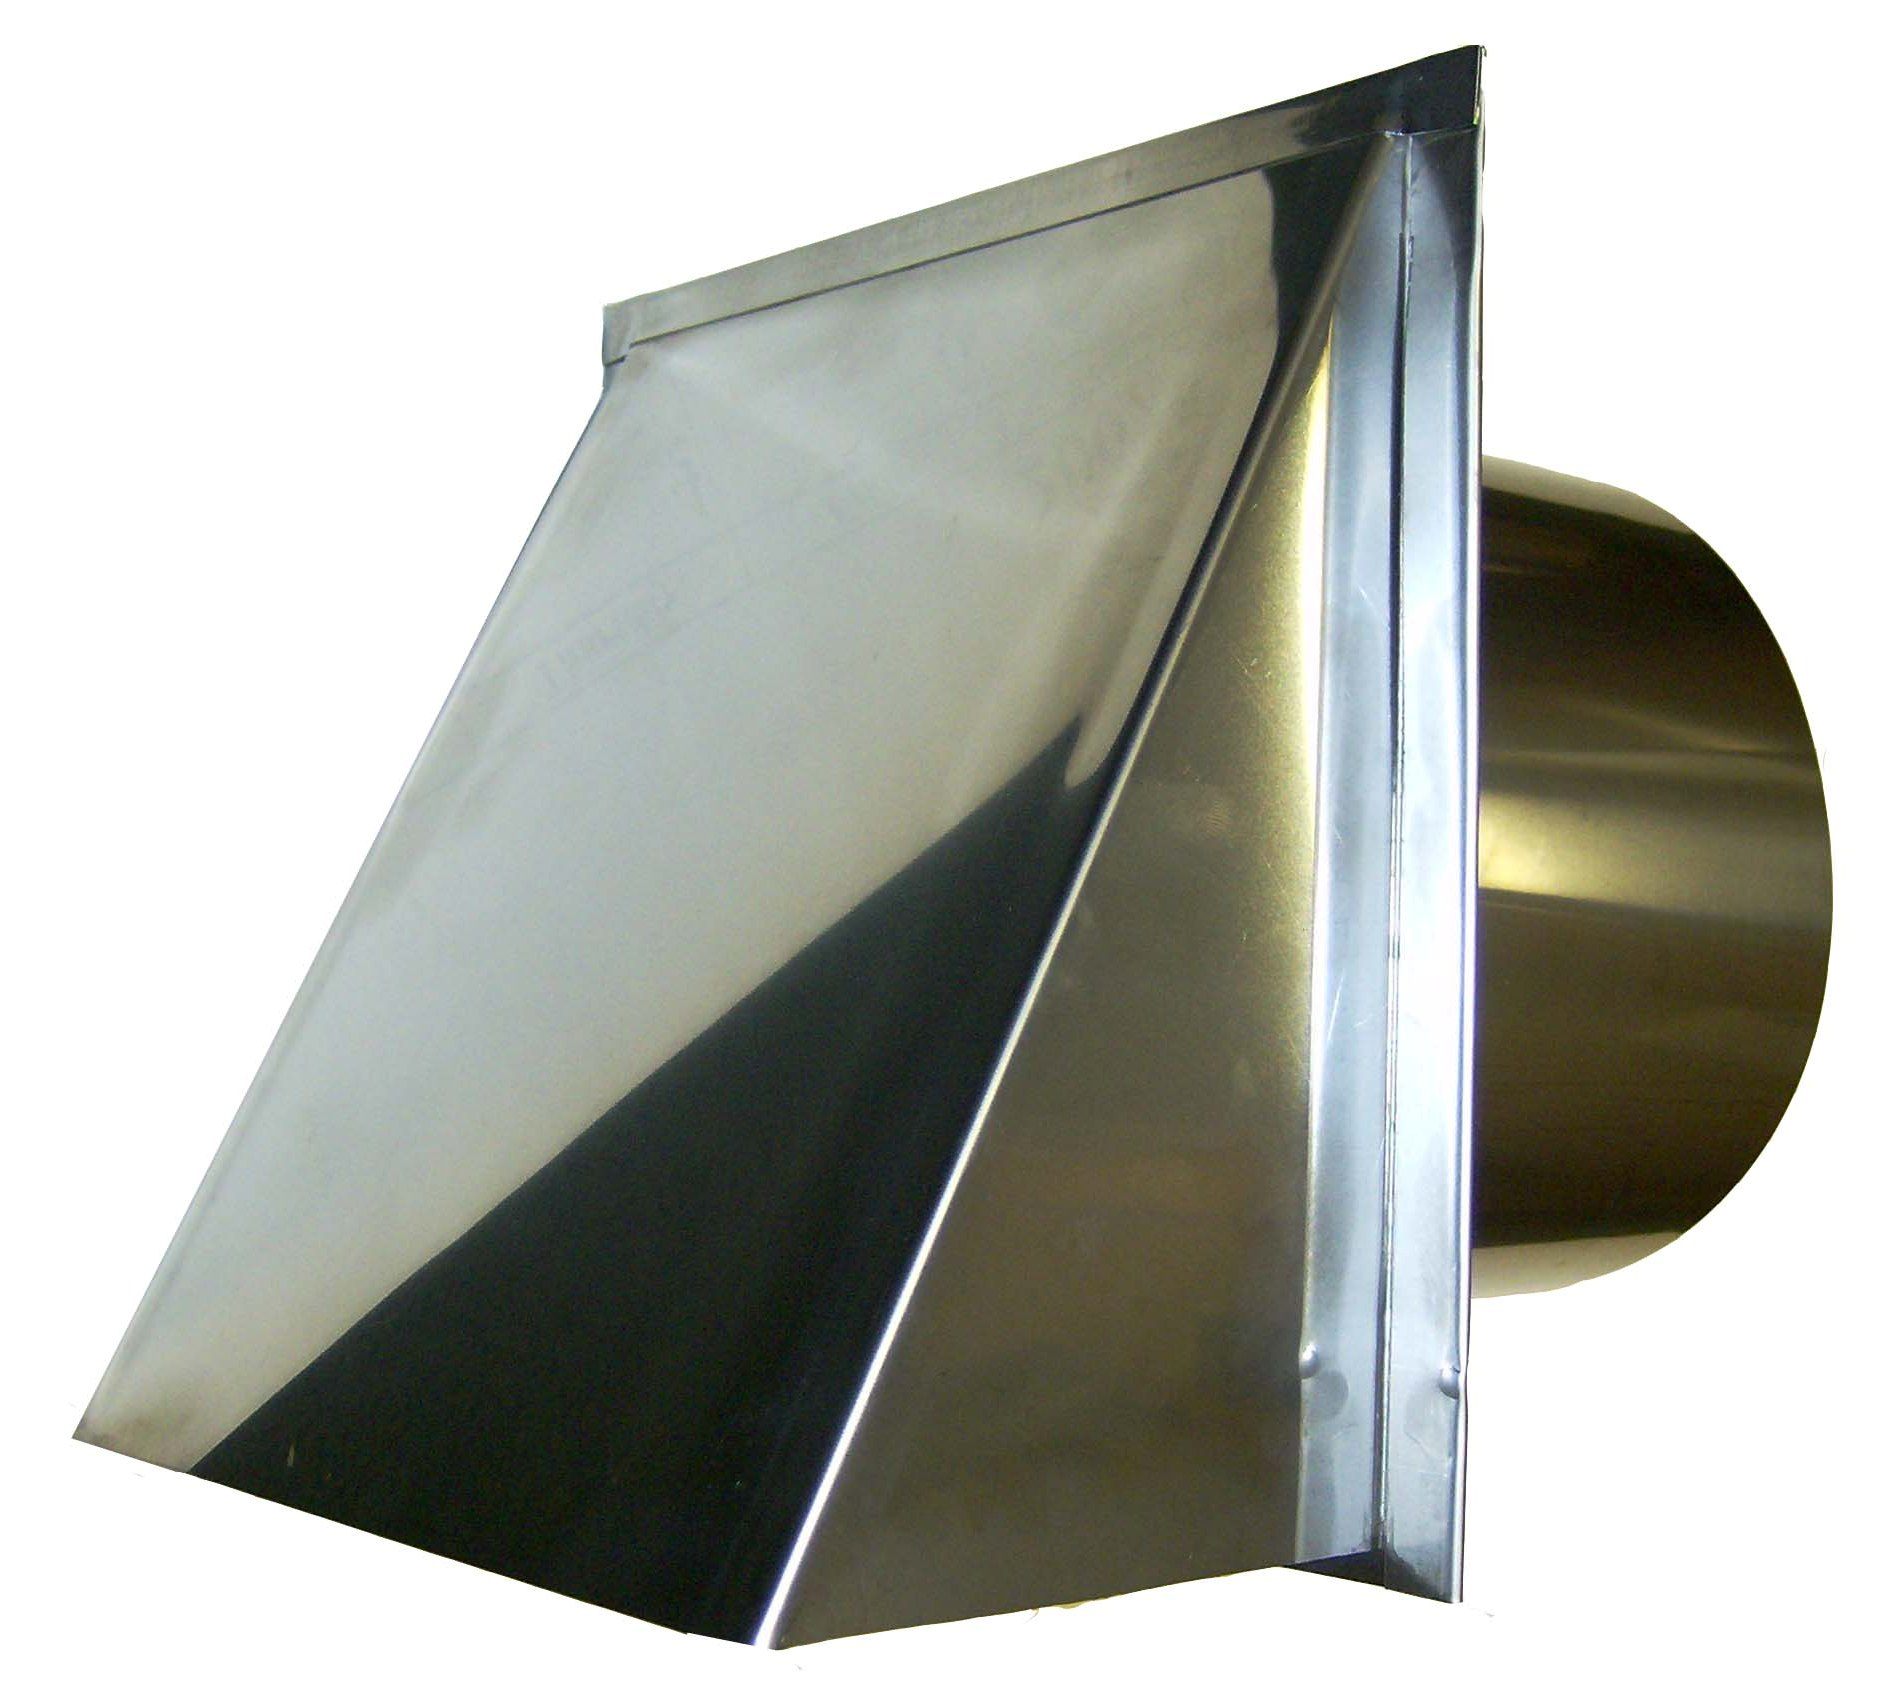 10 Inch Stainless Wall Mount Range Vent